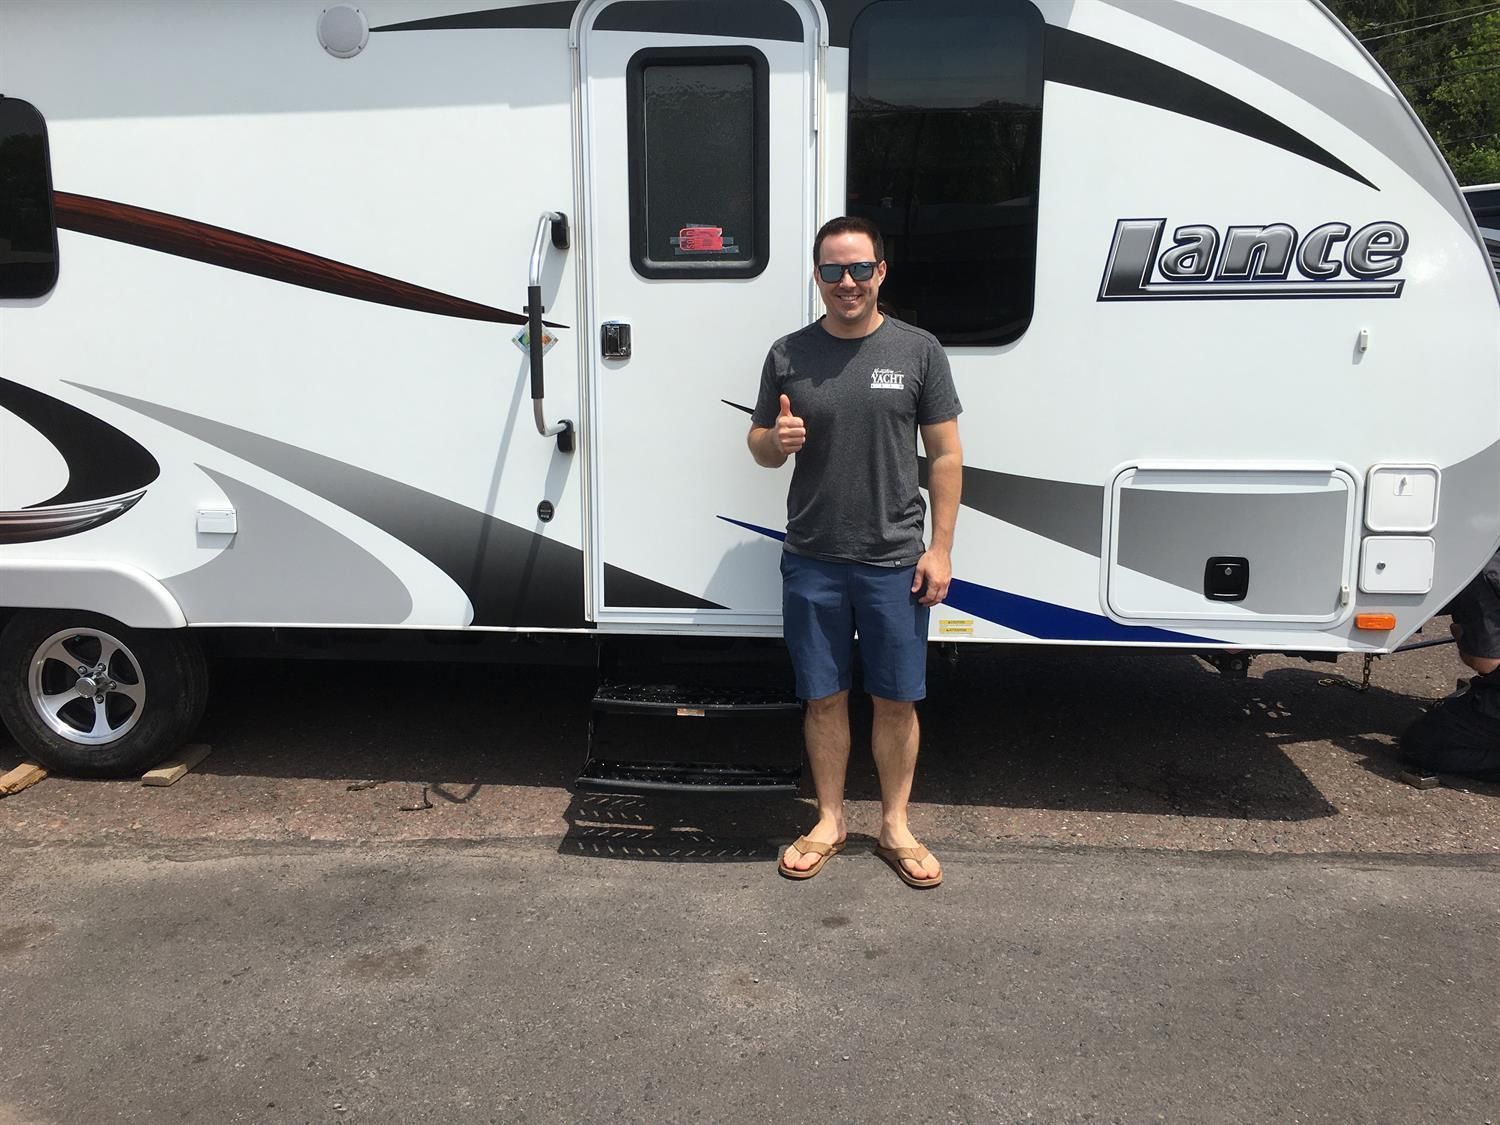 Congratulations And Best Wishes Gregg On The Purchase Of Your 2016 Lance 2285 We Sincerely Appreciate Your Business In 2020 Congratulations And Best Wishes Rv Papa